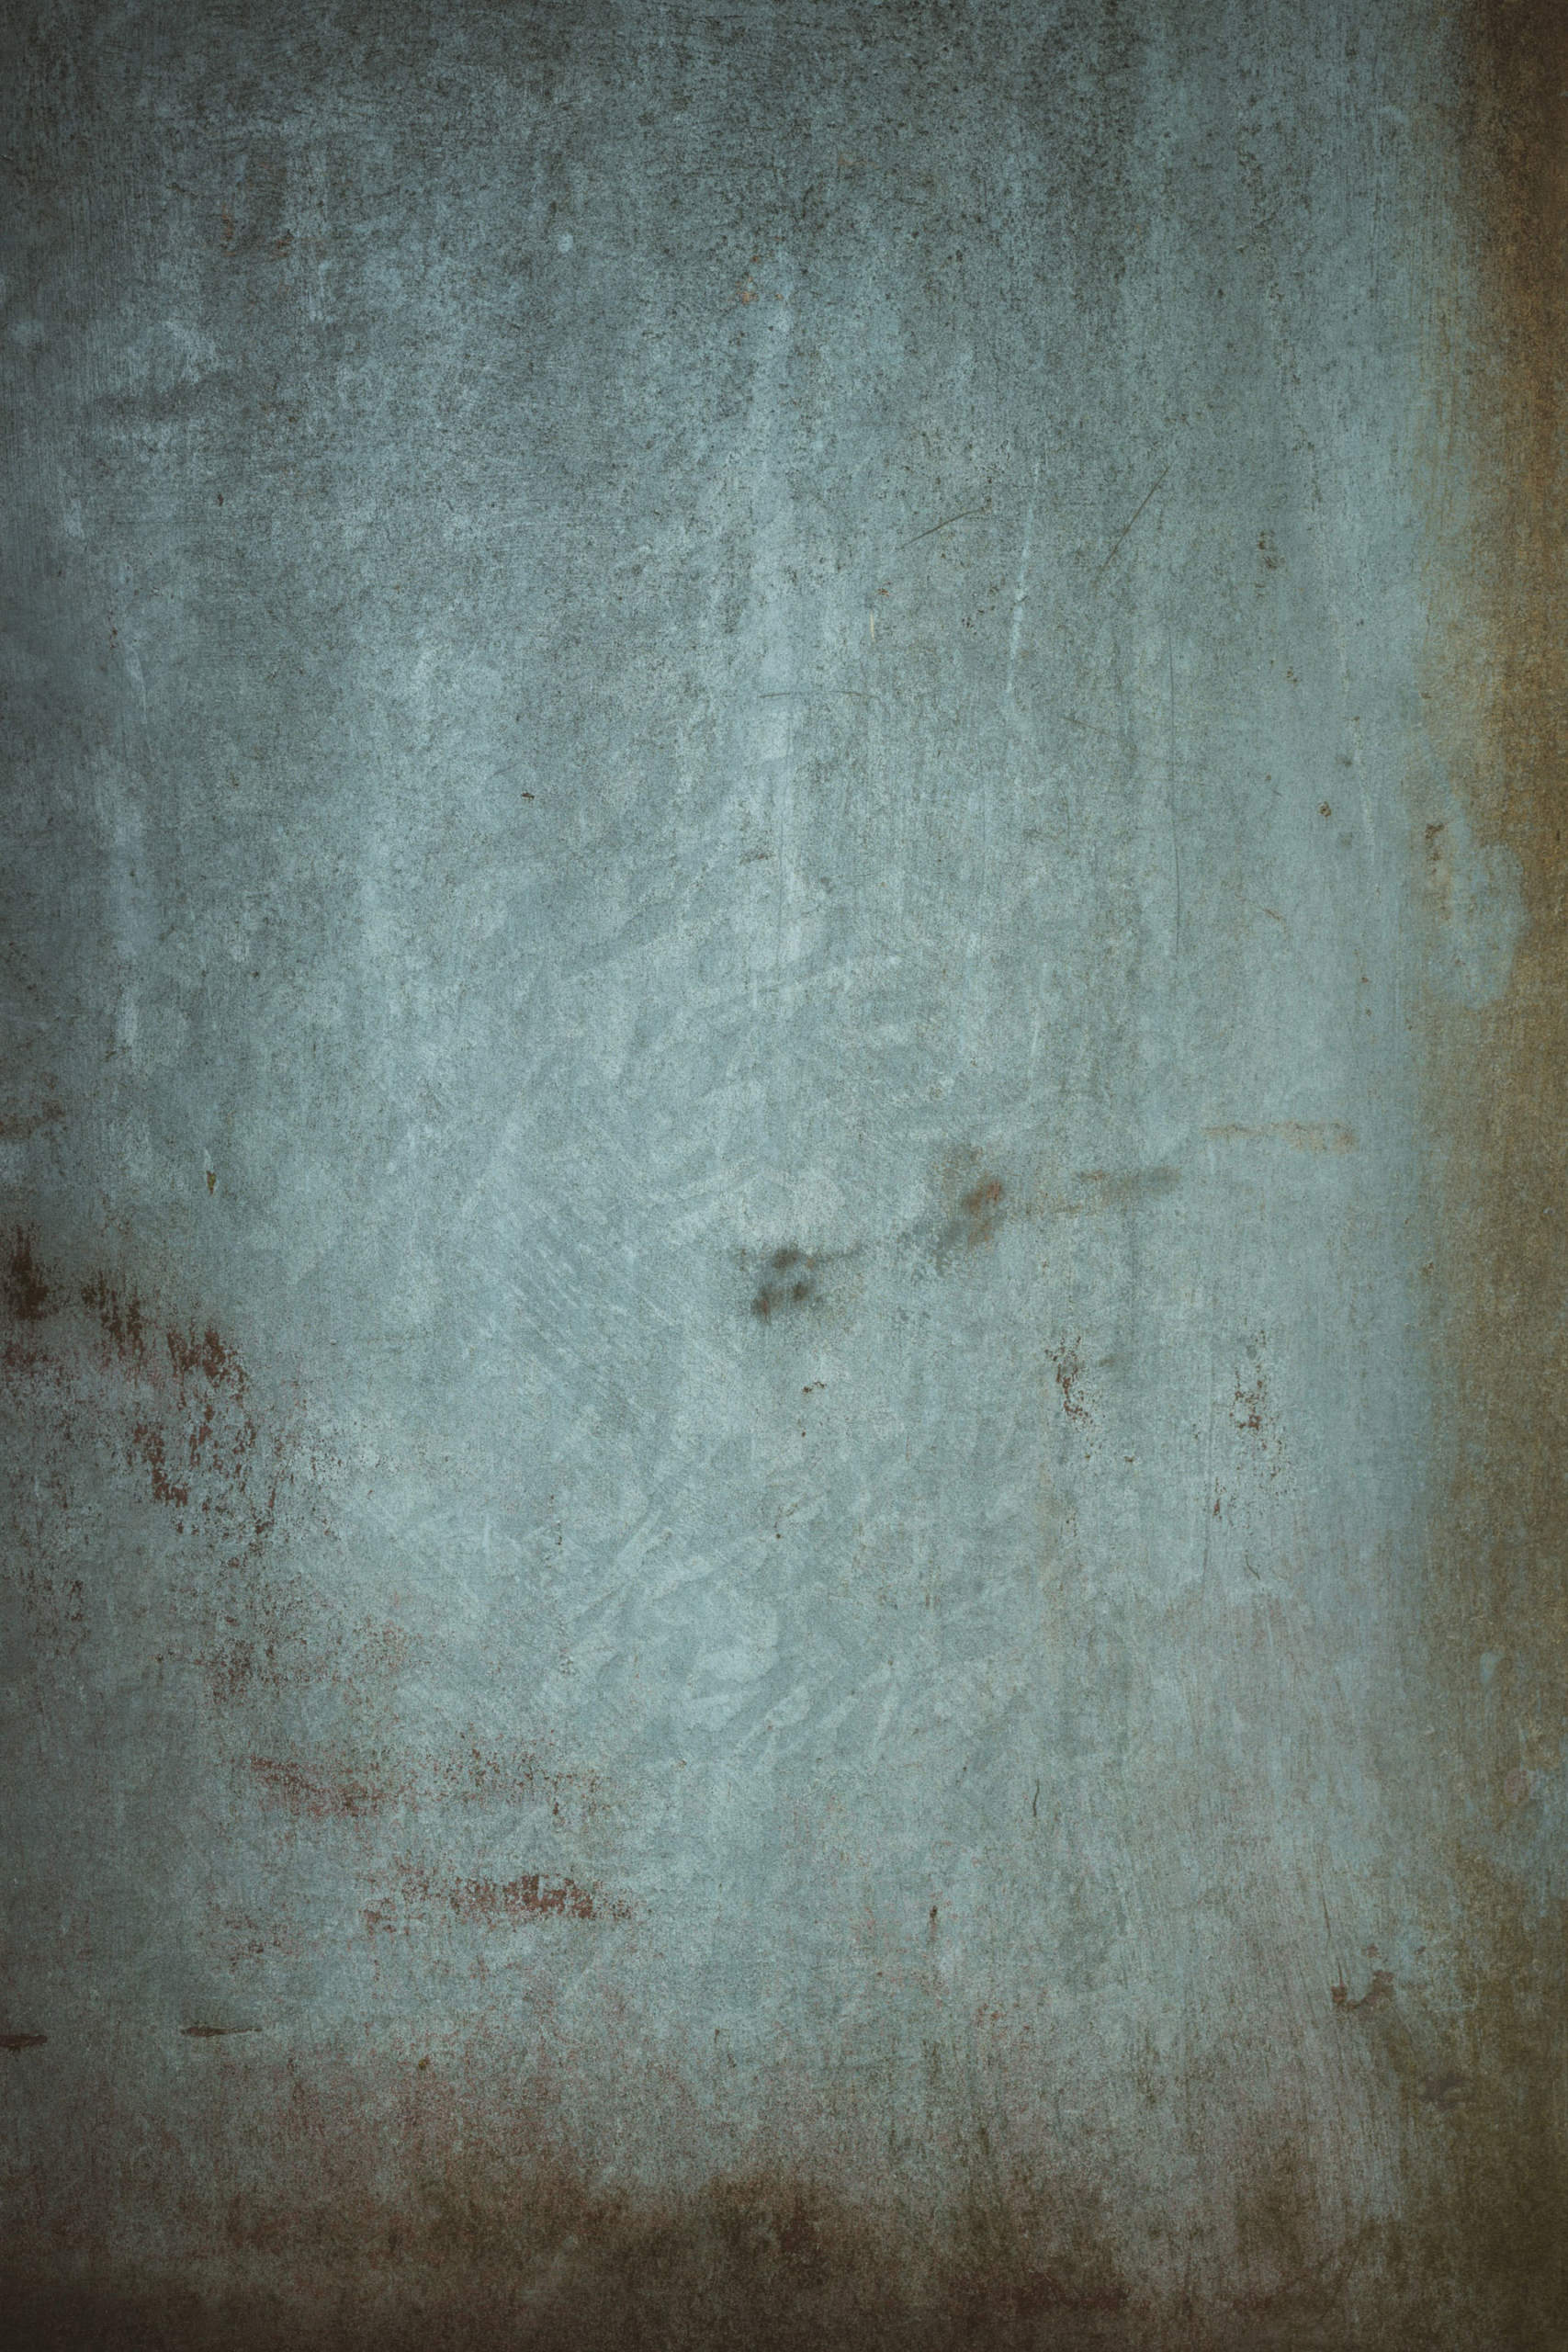 Metal background images and textures for your projects